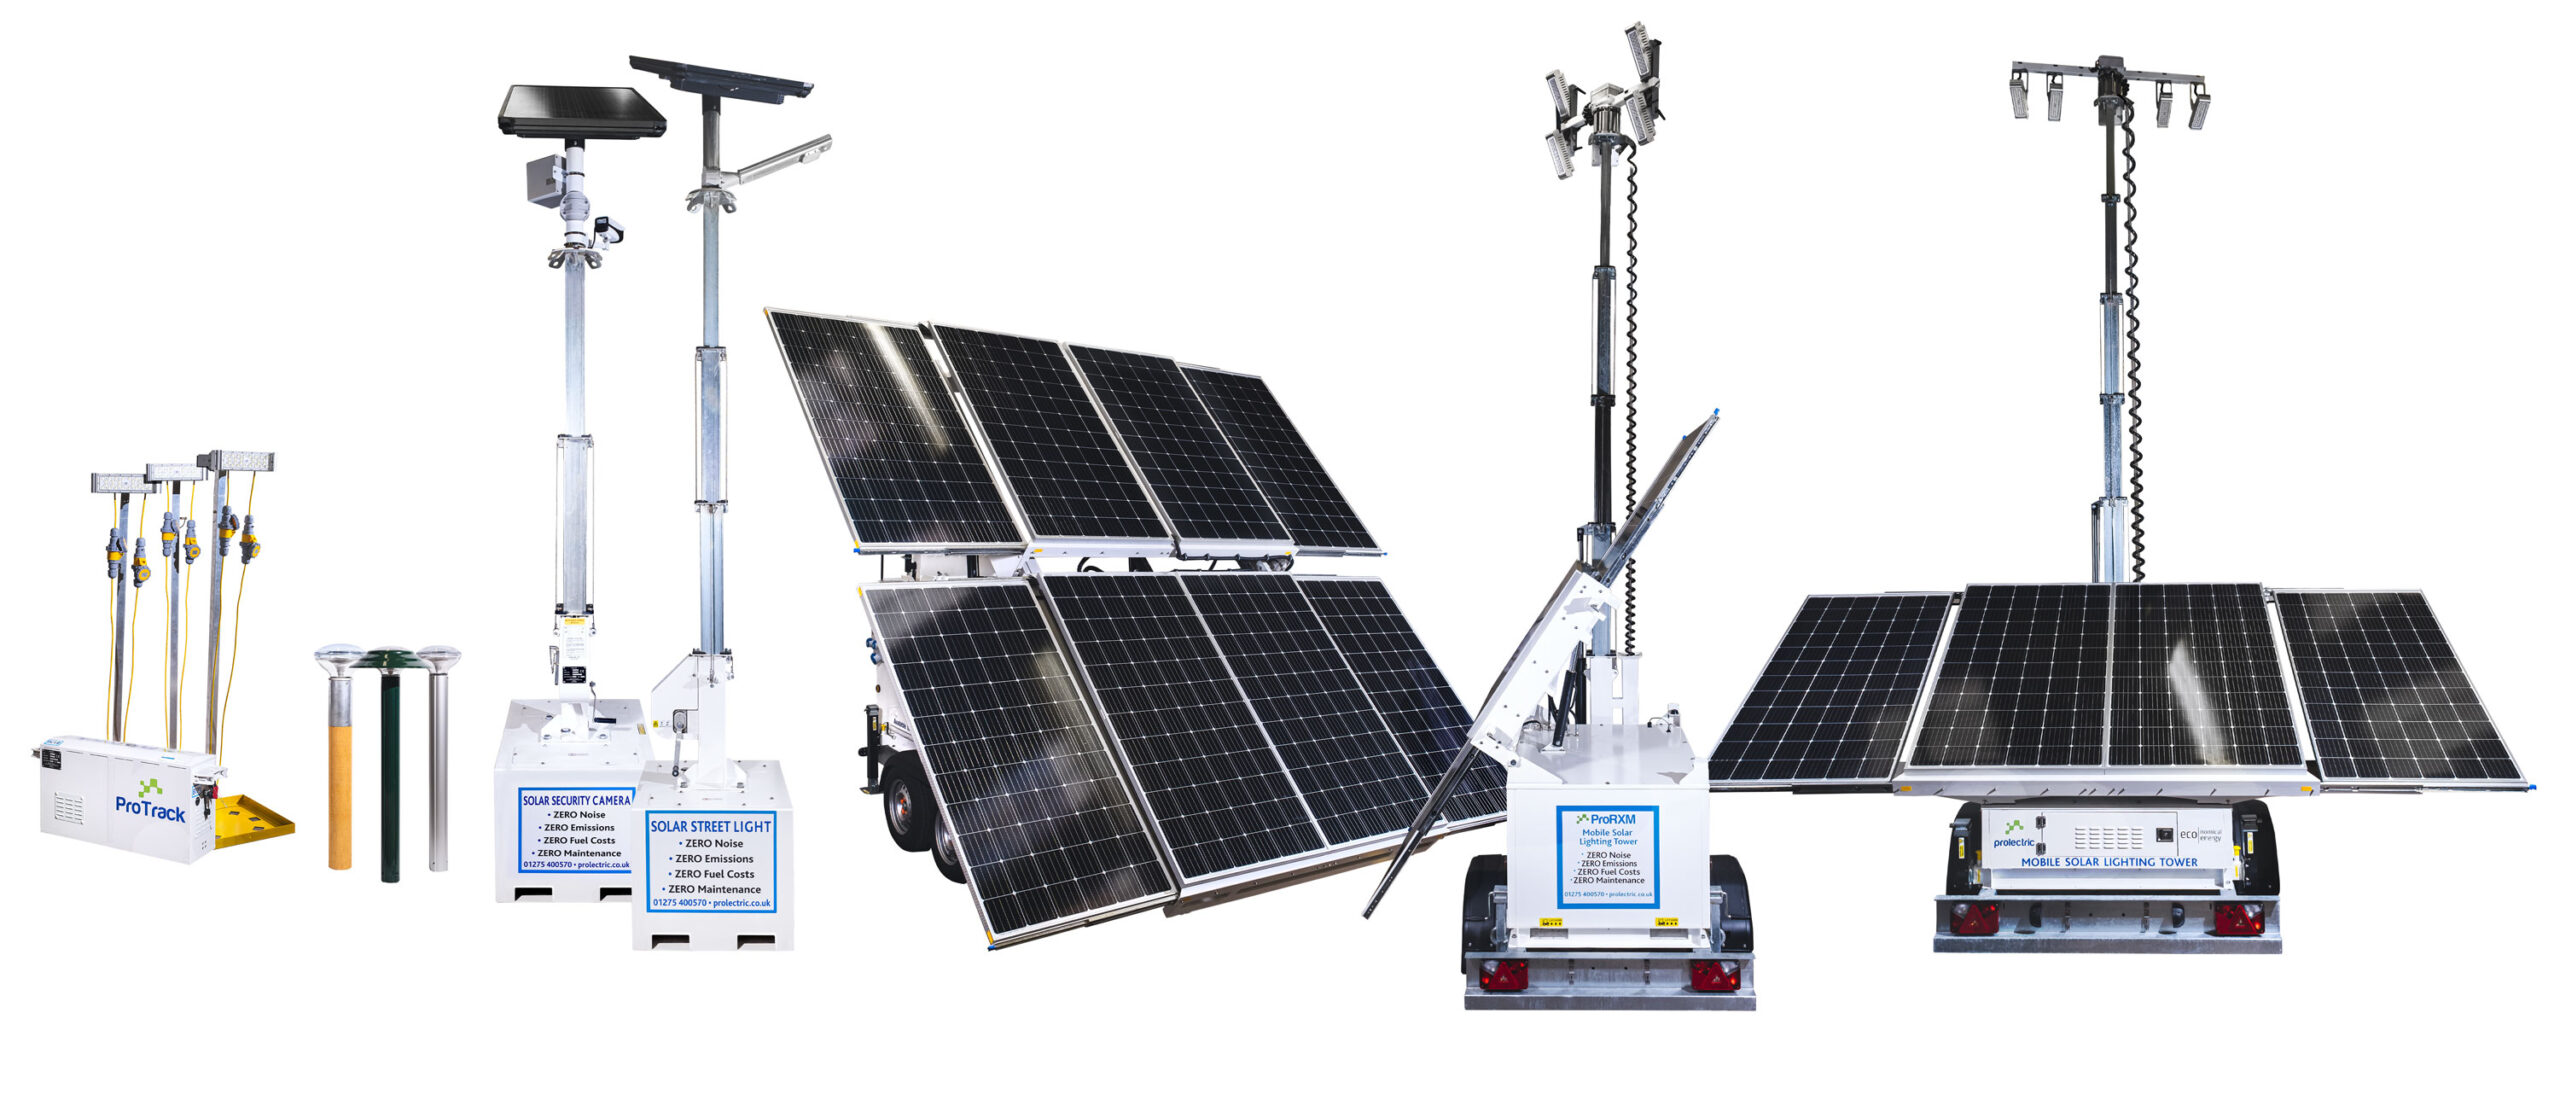 Prolectric Mobile Solar Lighting photography